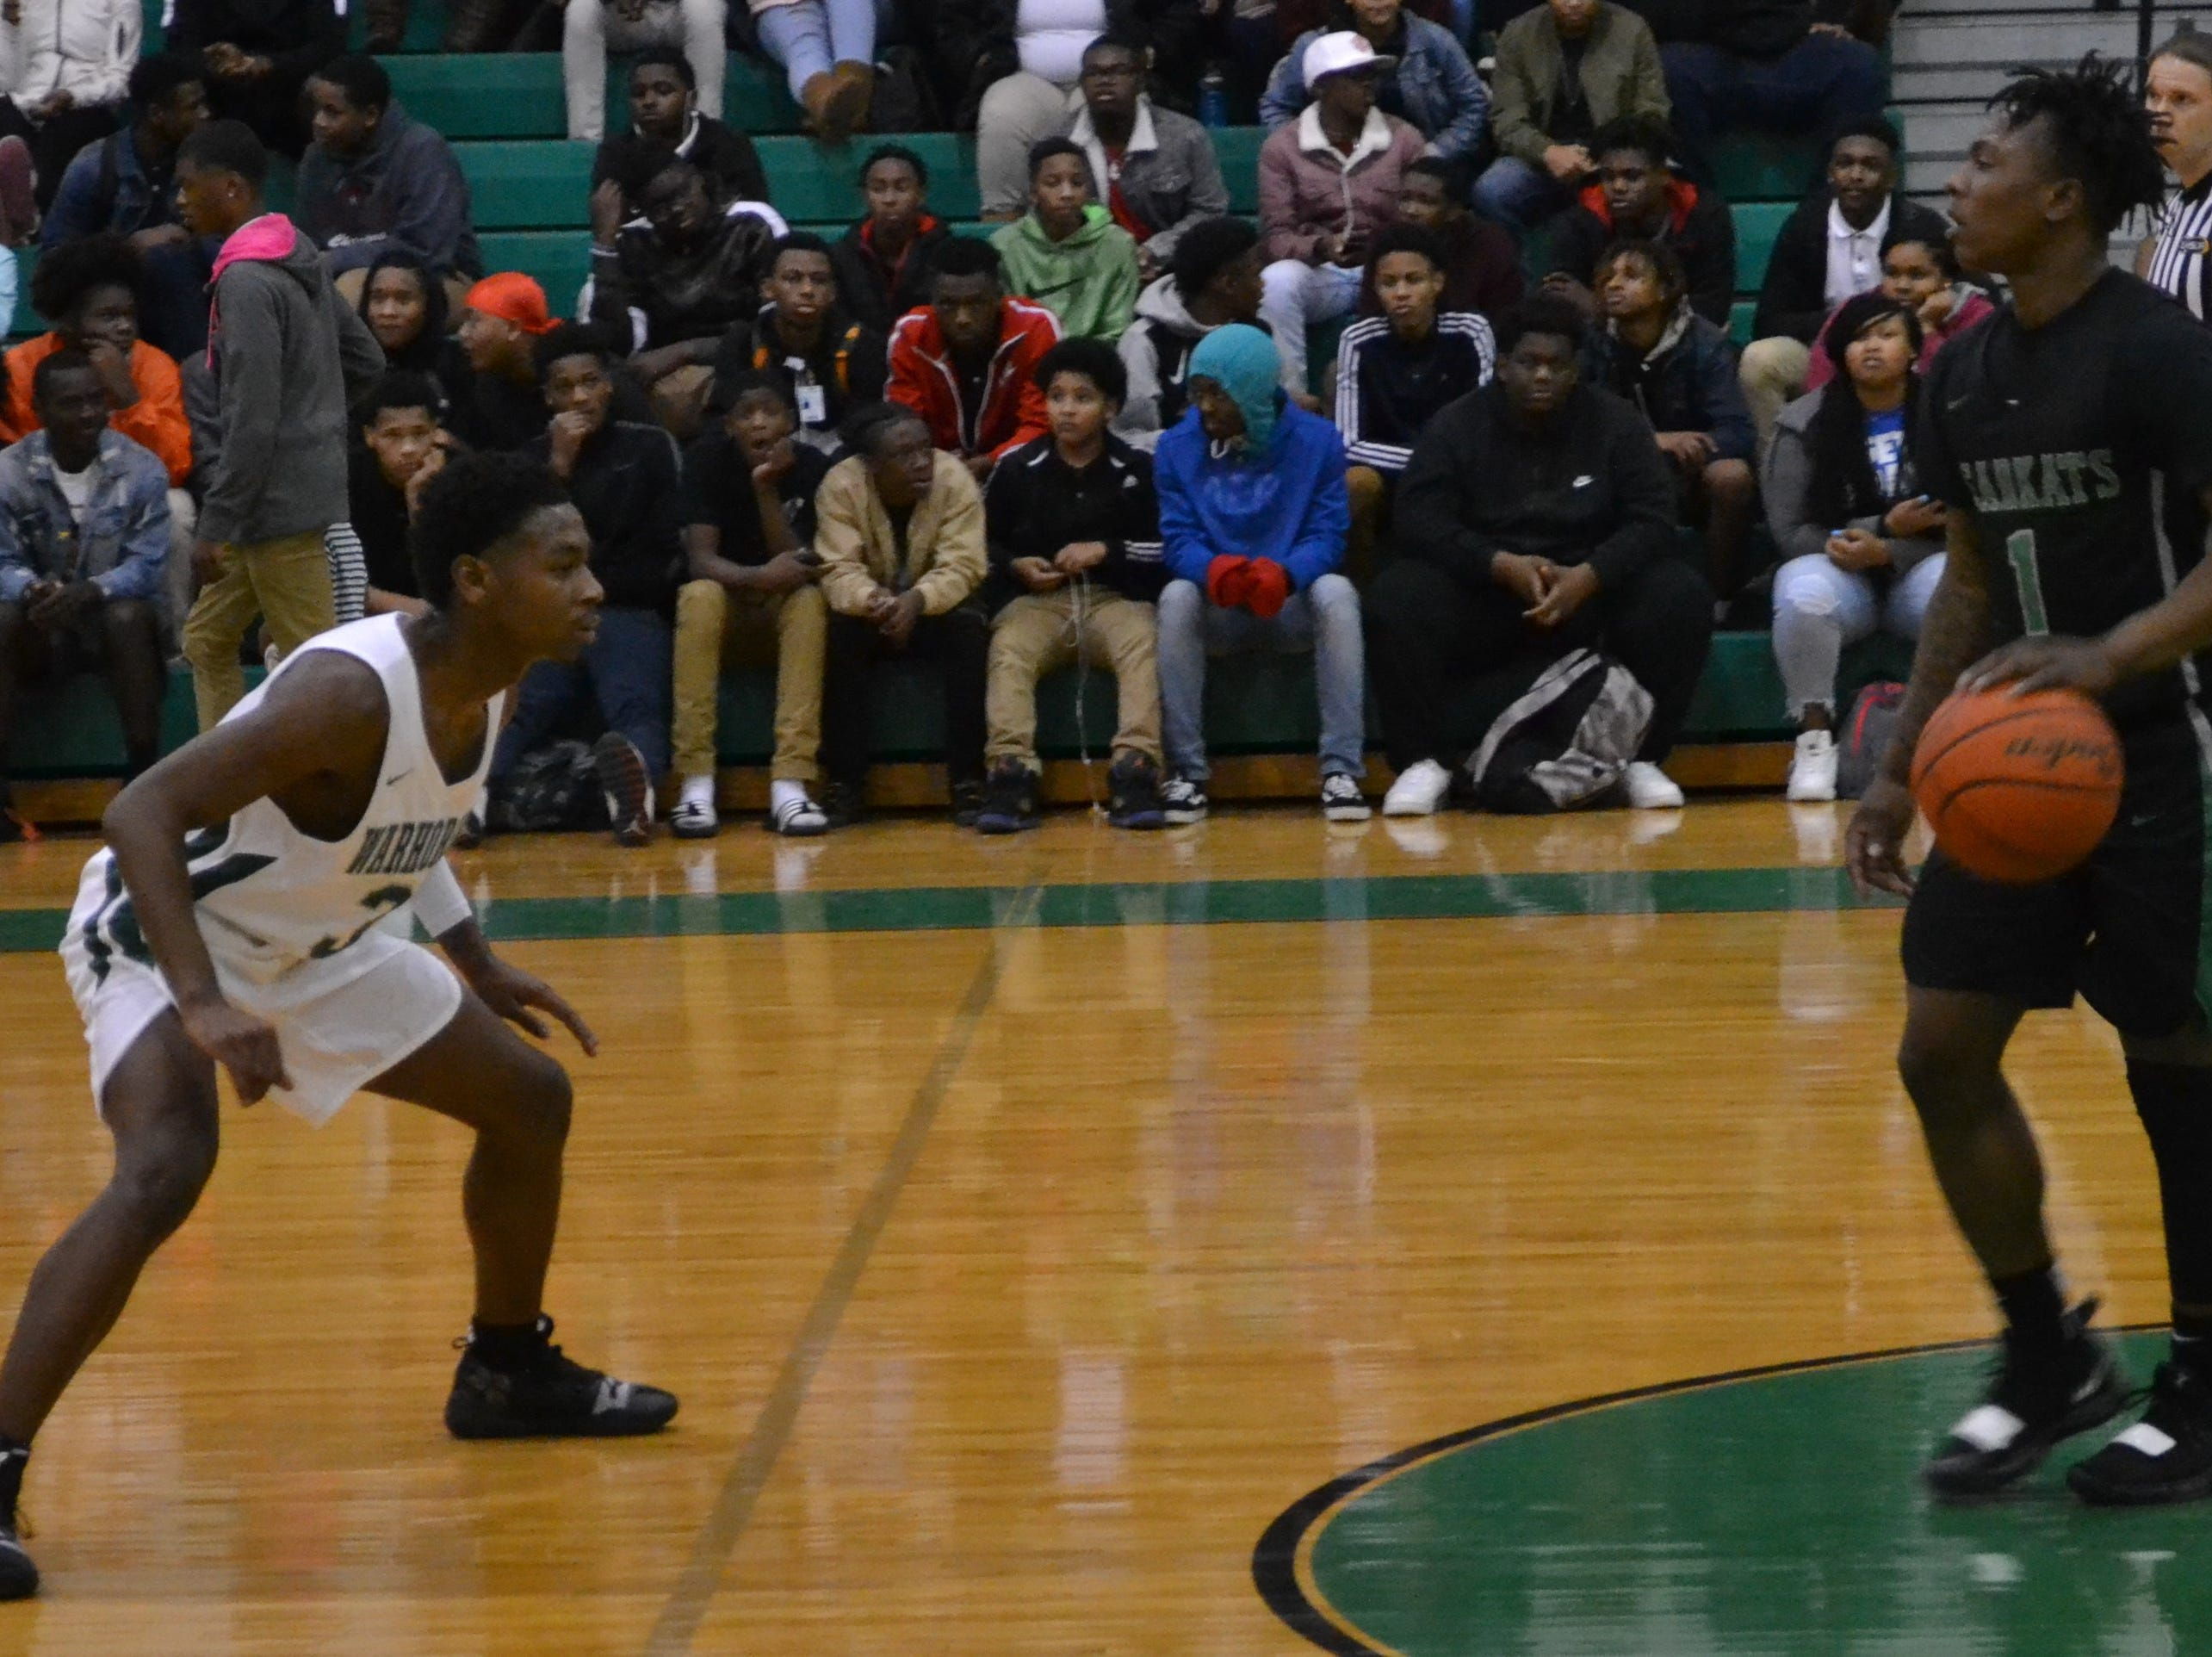 Melvion Flanagan (3) (left) defends Bossier's Jacoby Decker (1). The Peabody boys basketball team played the Bossier Bearkats Tuesday night at the Emerald Palace. Peabody got the win 72-67.